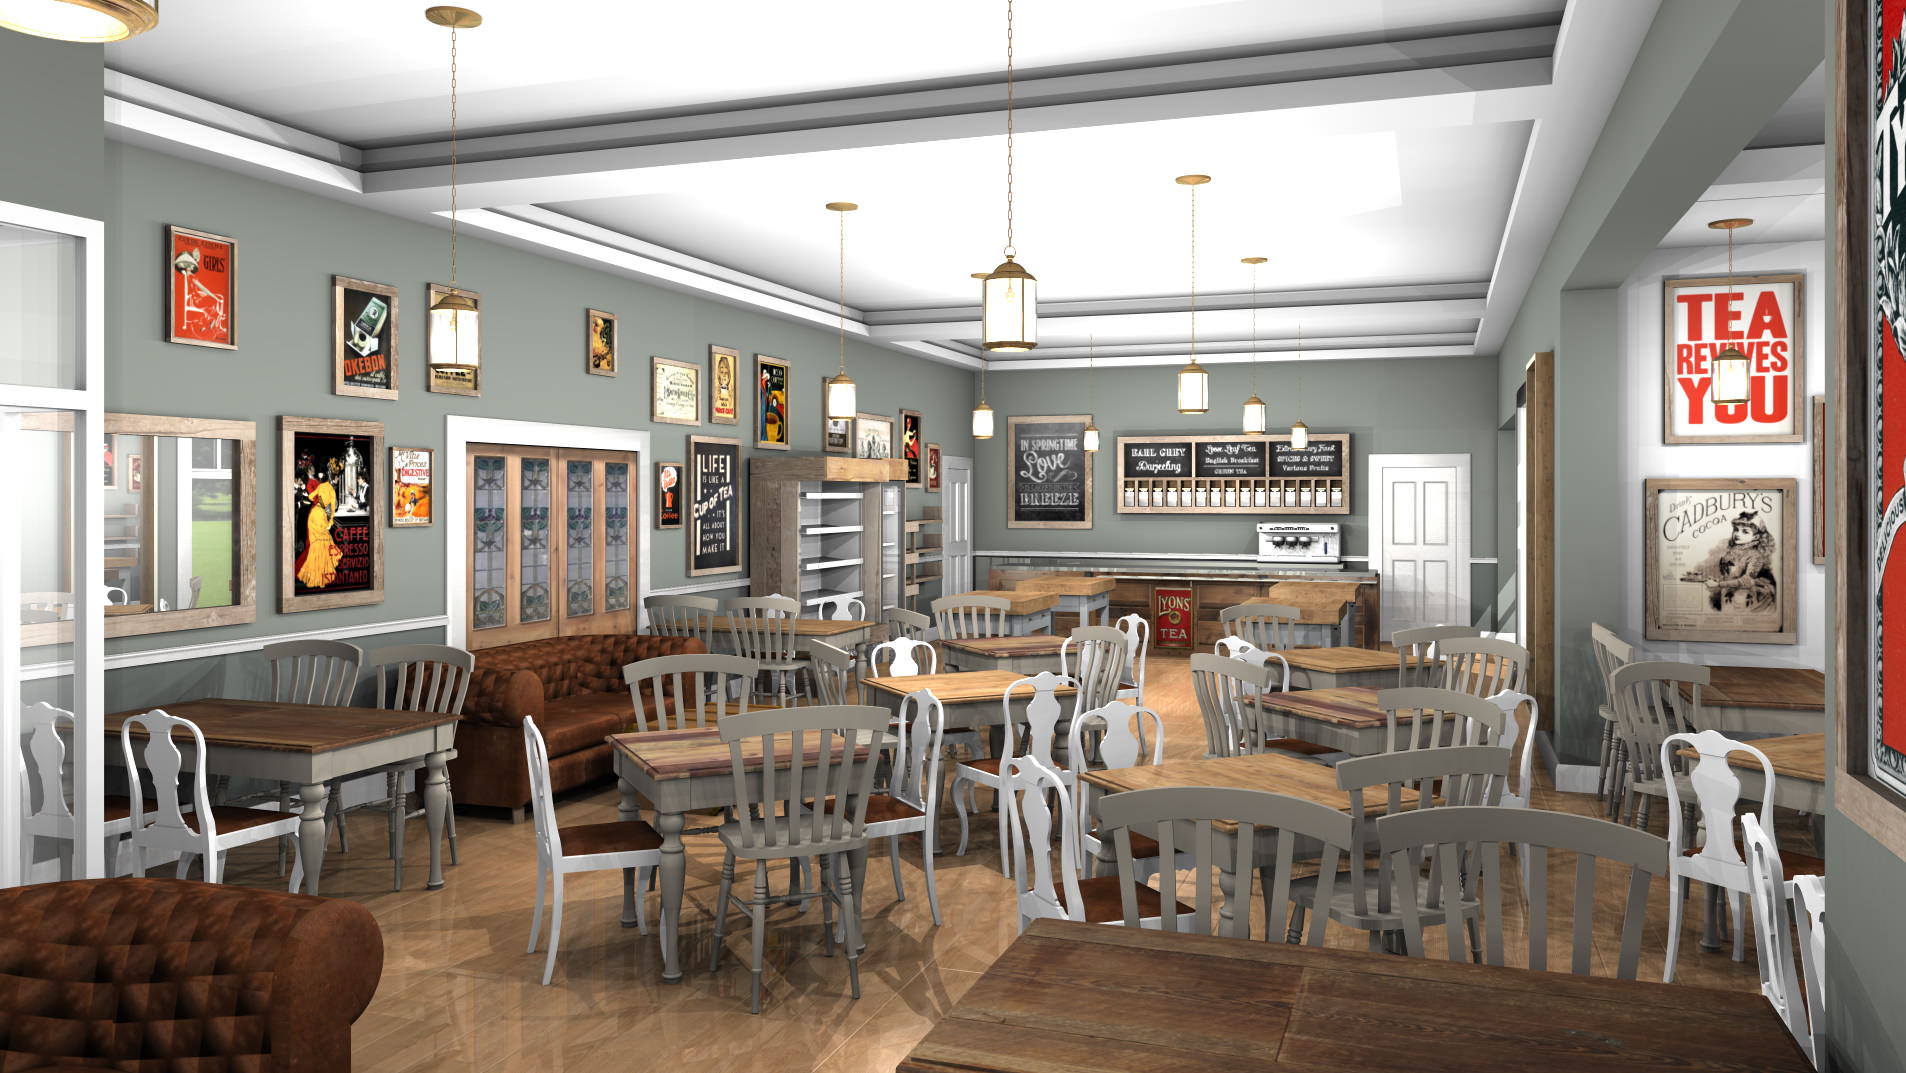 Tea Room & Coffee Shop Interior Café Interior Design